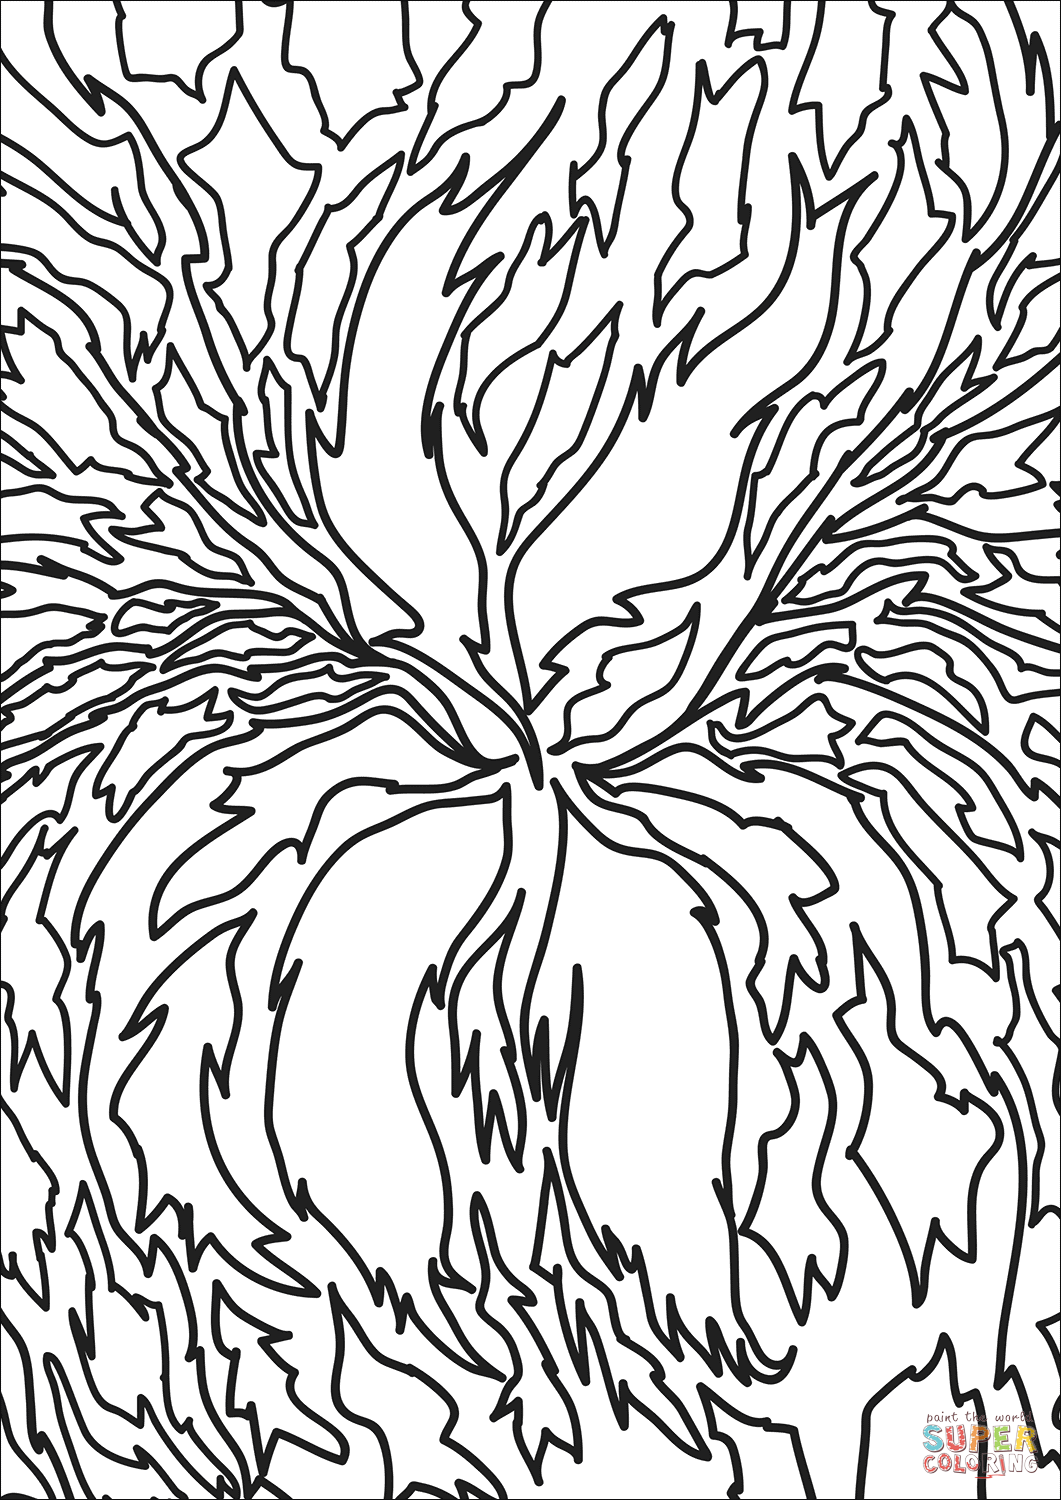 free doodle art to print and color abstract doodle coloring page free printable coloring pages color and art print free to doodle